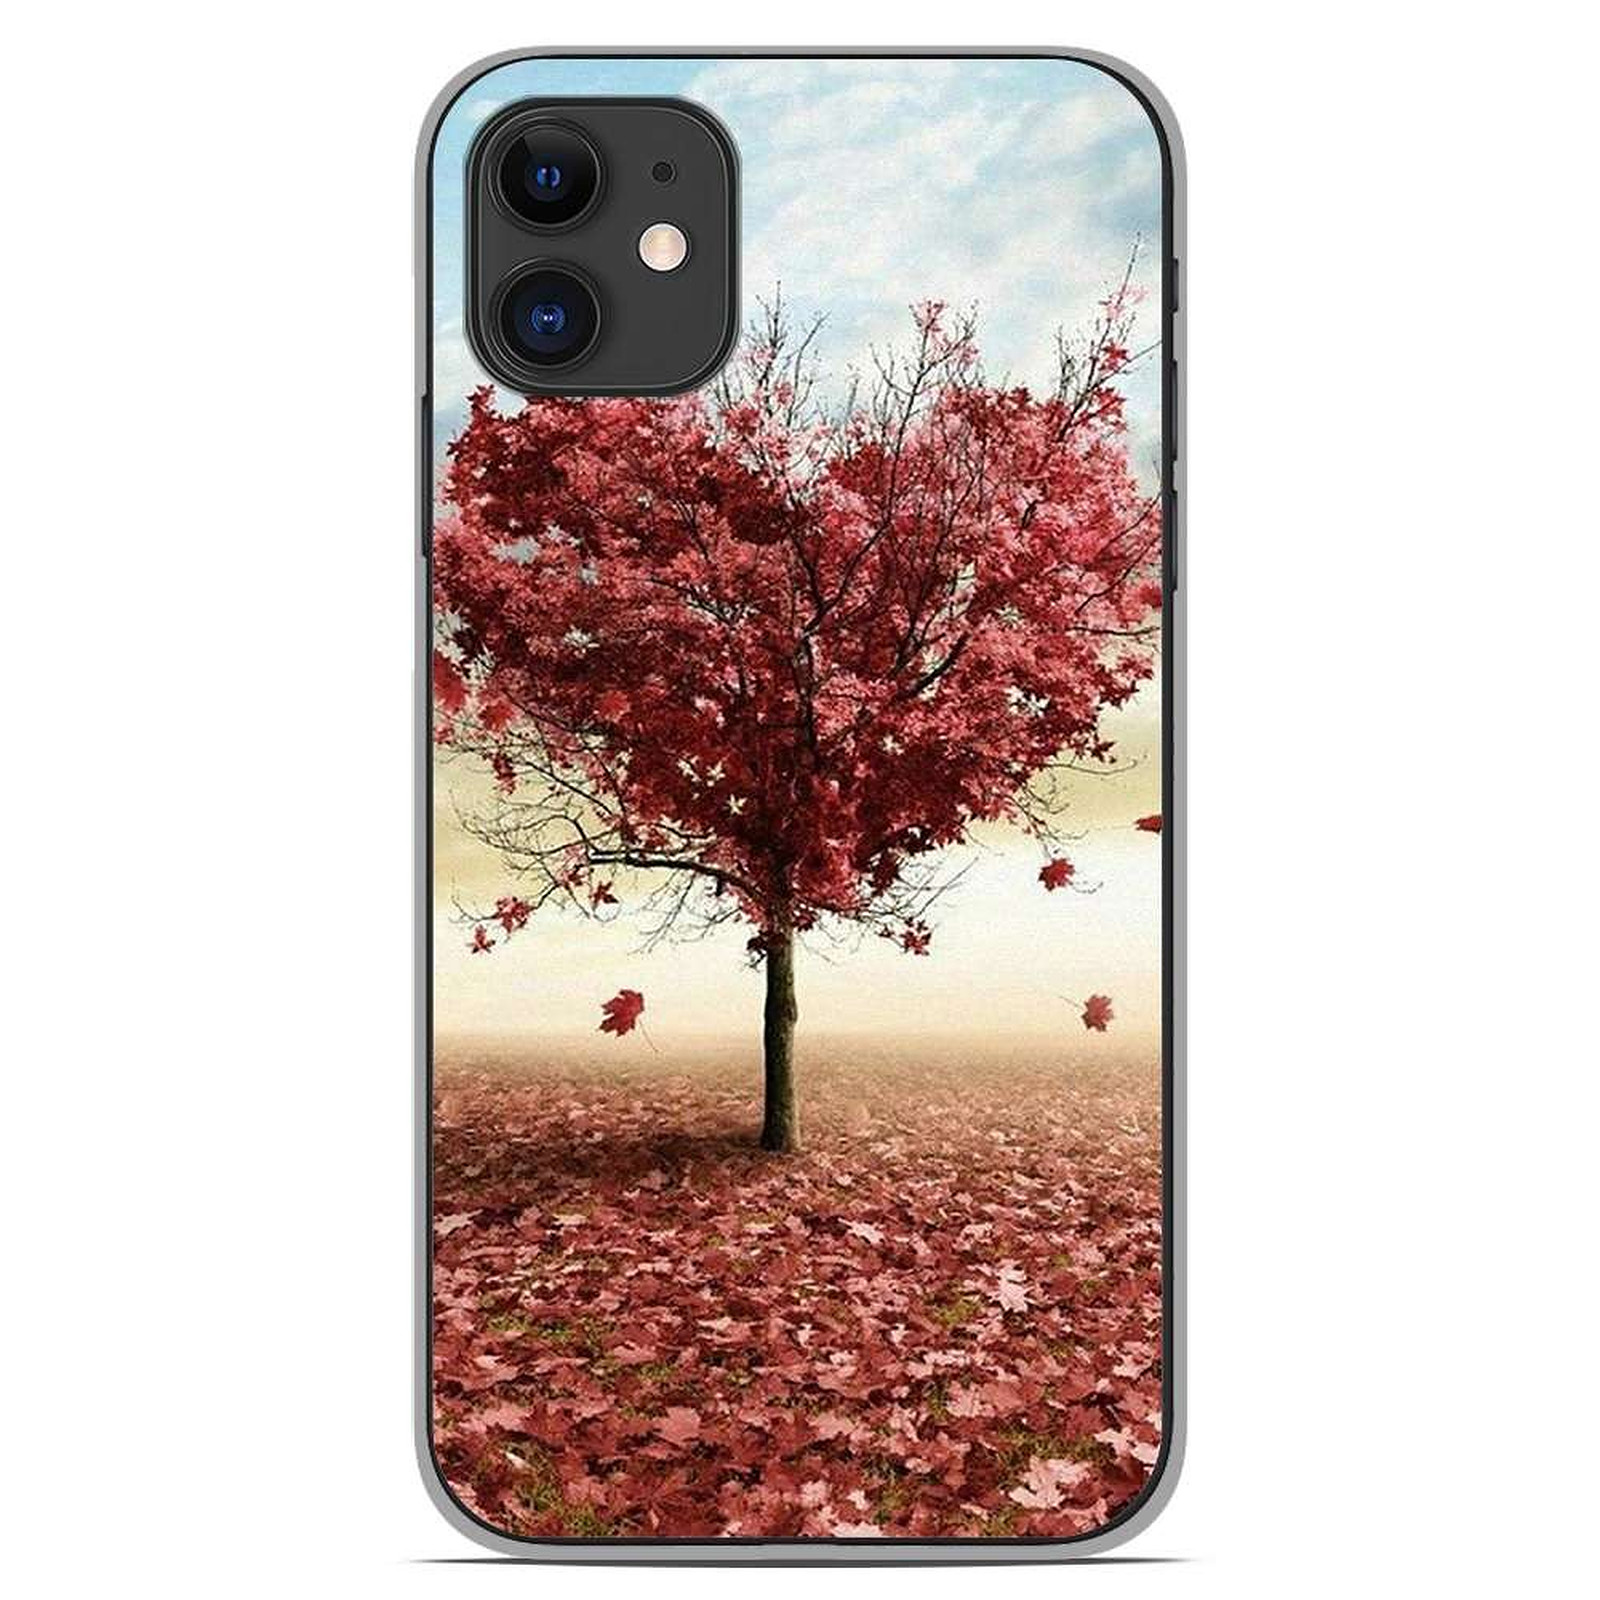 1001 Coques Coque silicone gel Apple iPhone 11 motif Arbre Love